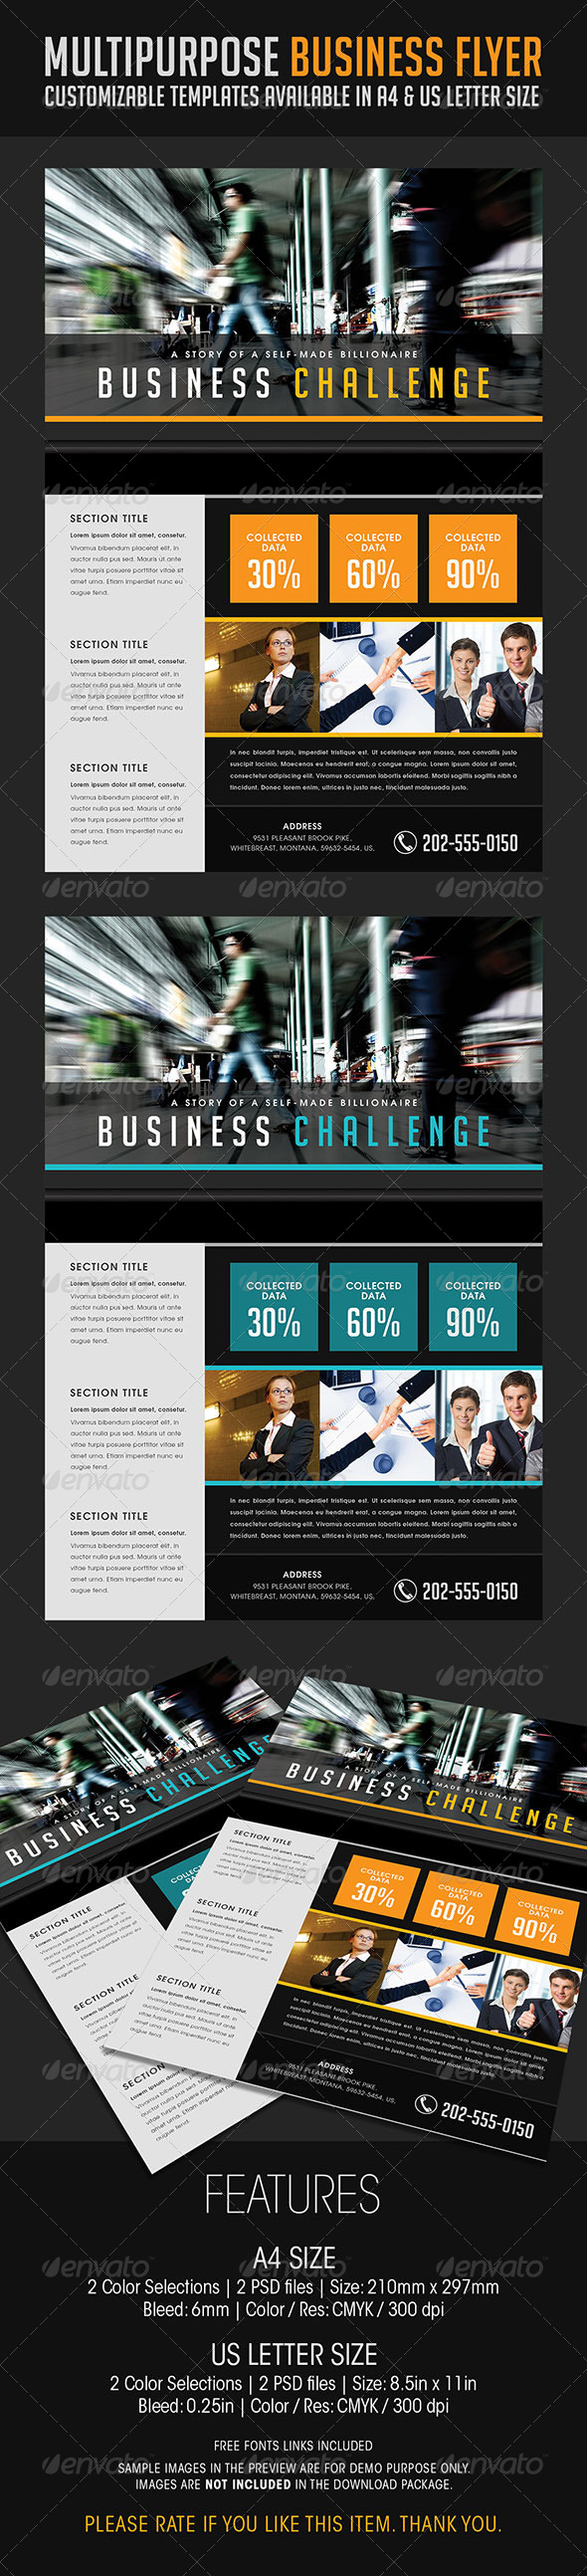 Multipurpose Business Flyer 07 - Corporate Flyers